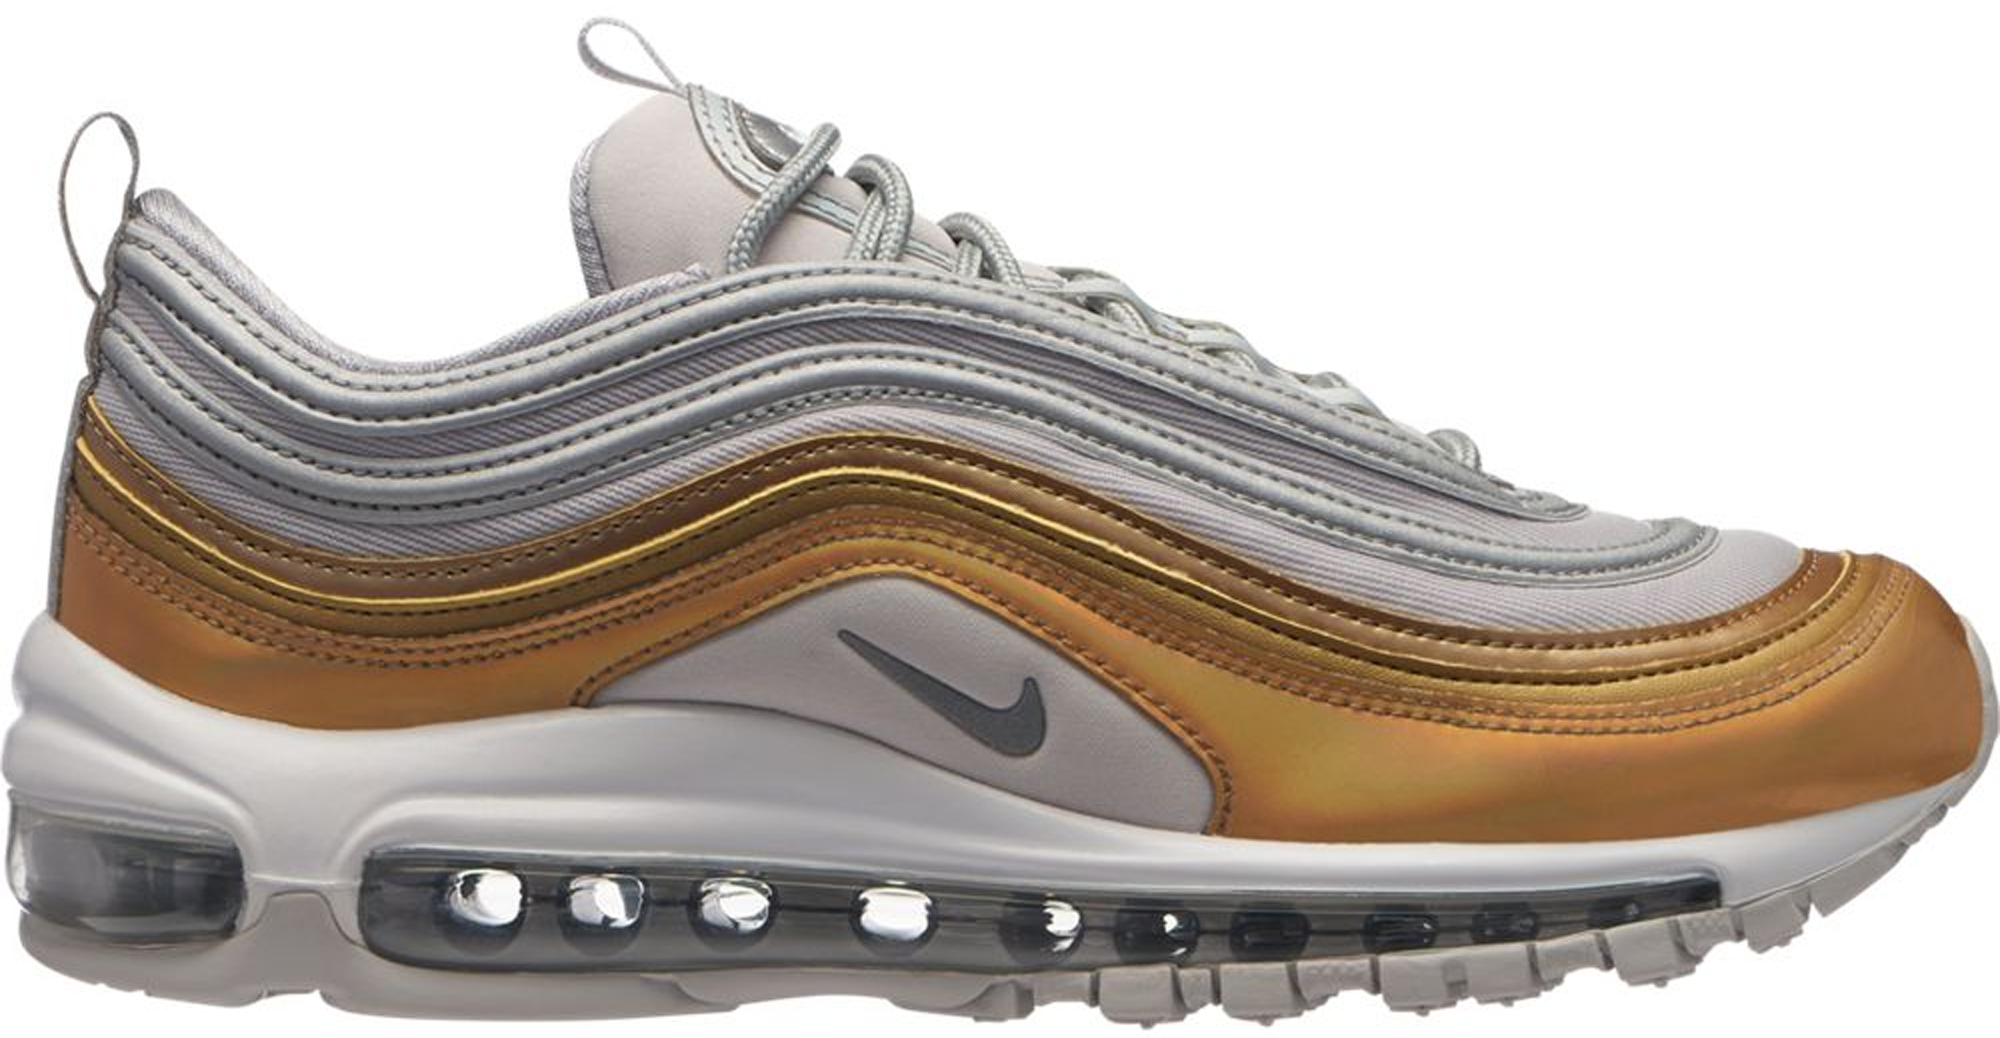 9fd1654a5e26 ... coupon code air max 97 vast grey metallic gold w 409cd ace13